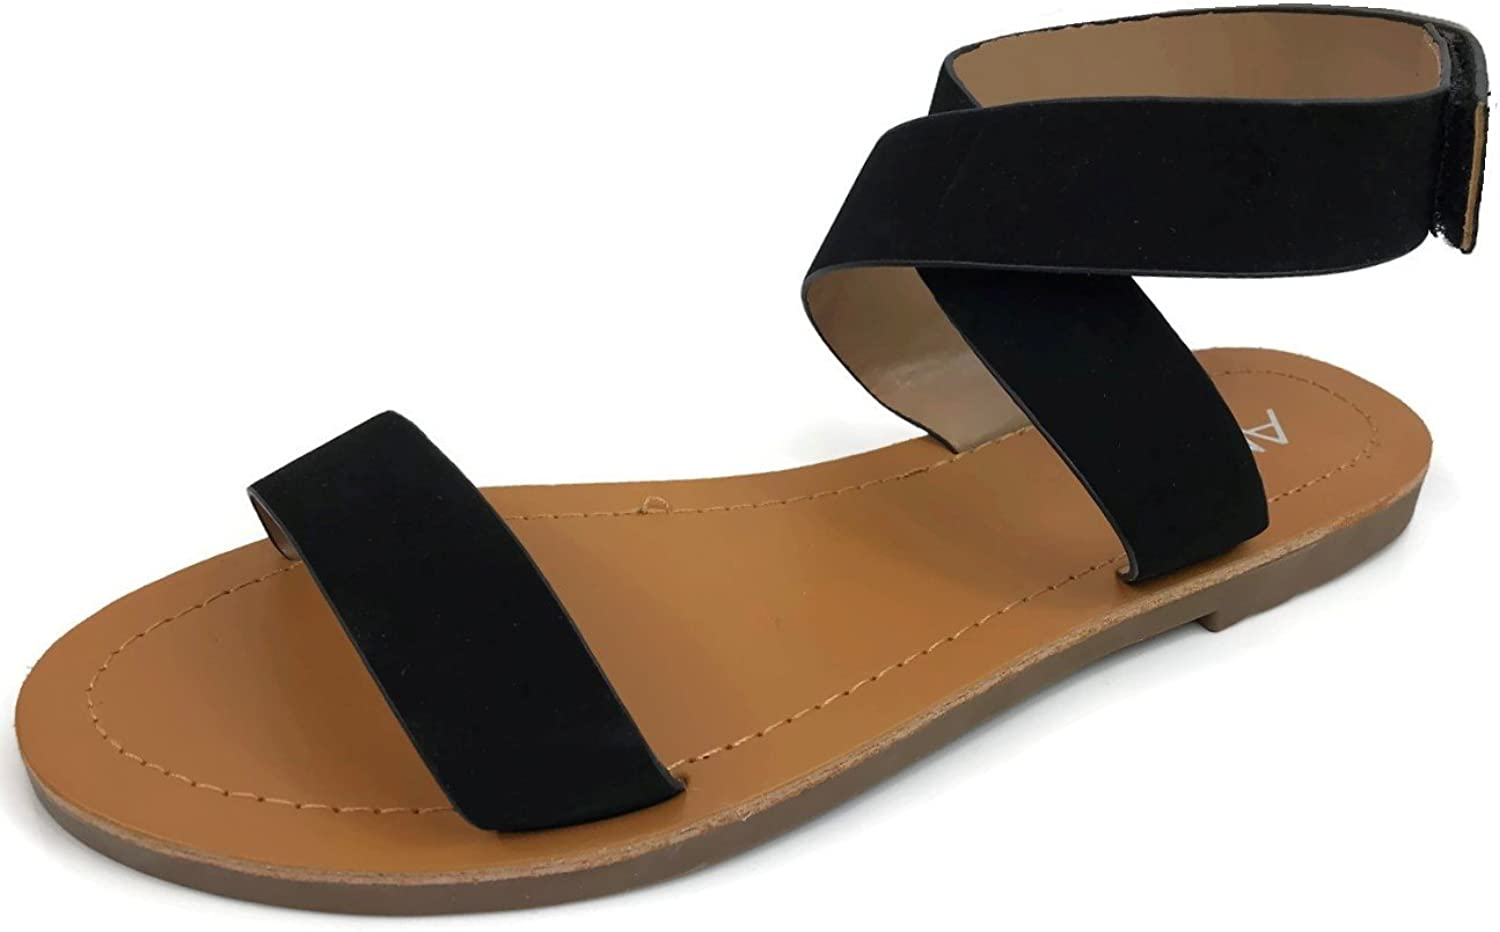 Anna Fashion Womens Cute Ankle Wrap Sandal with Over Toe Strap Flat